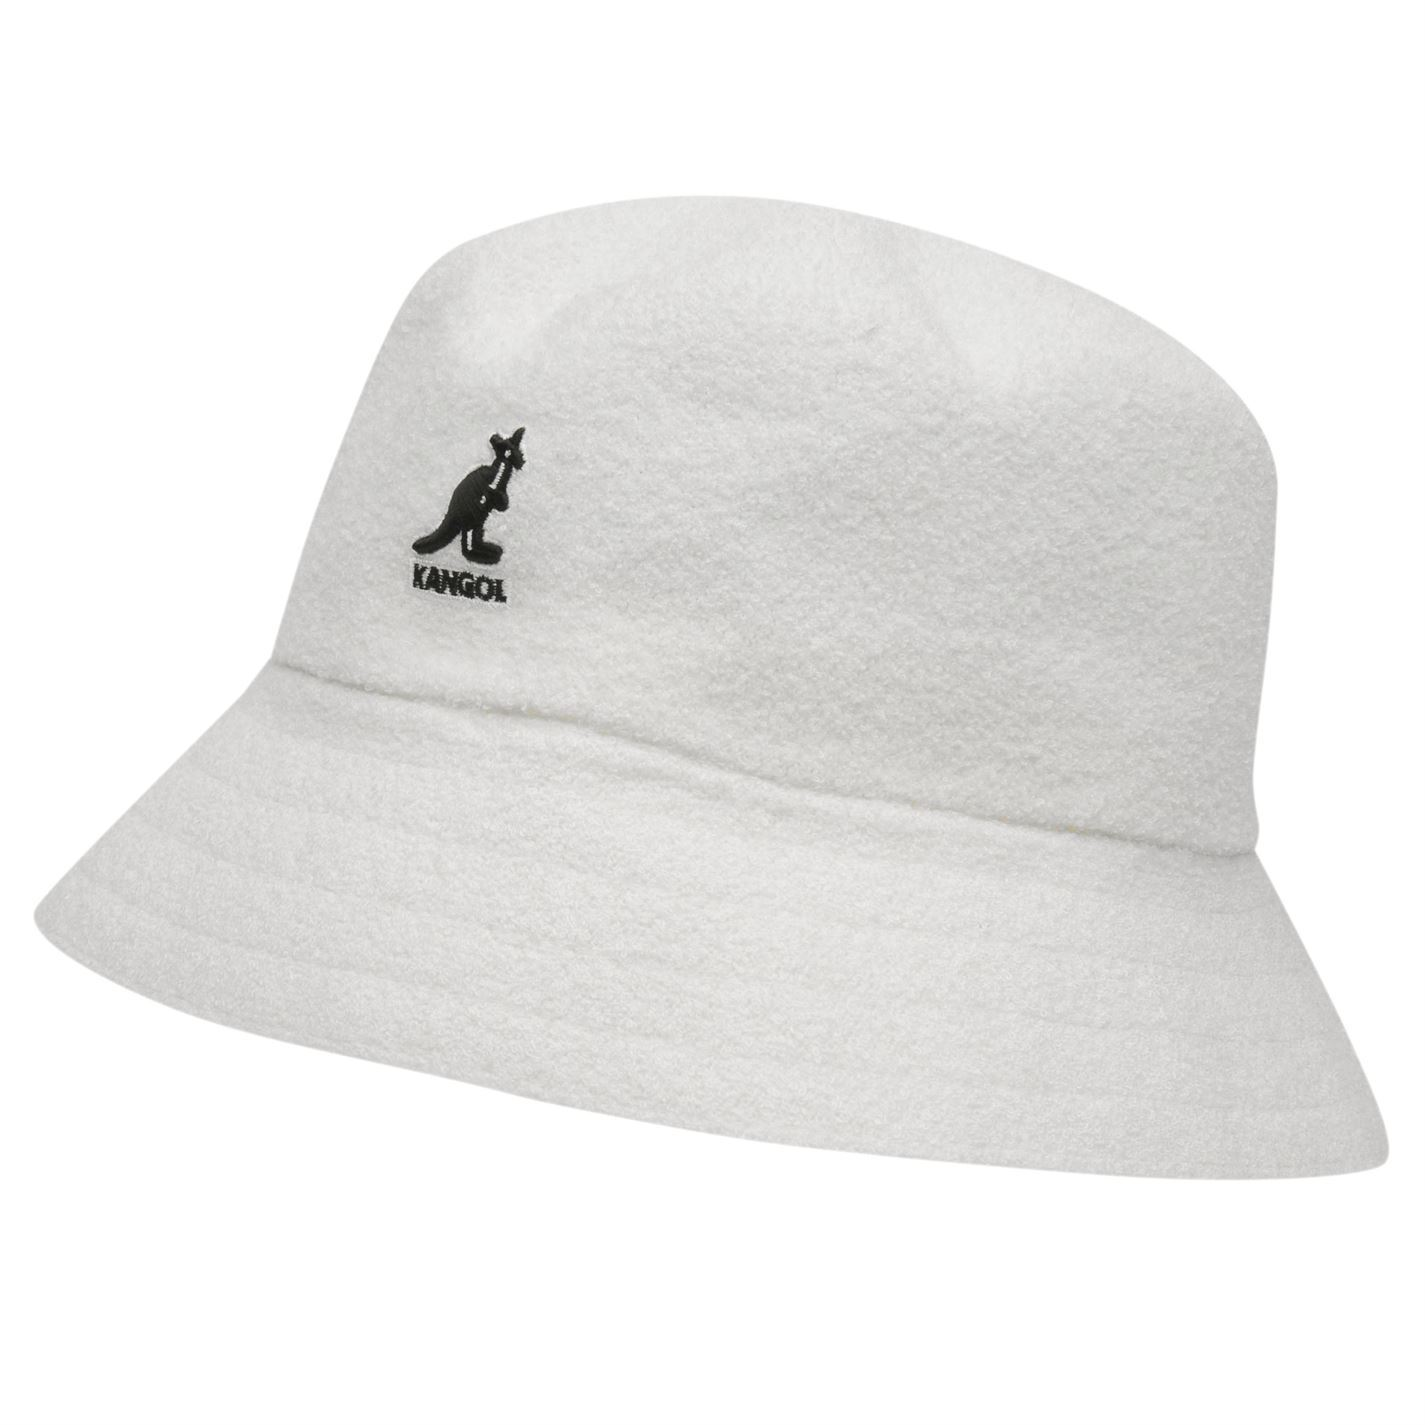 Kangol Boucle Bucket Hat Mens Gents | eBay